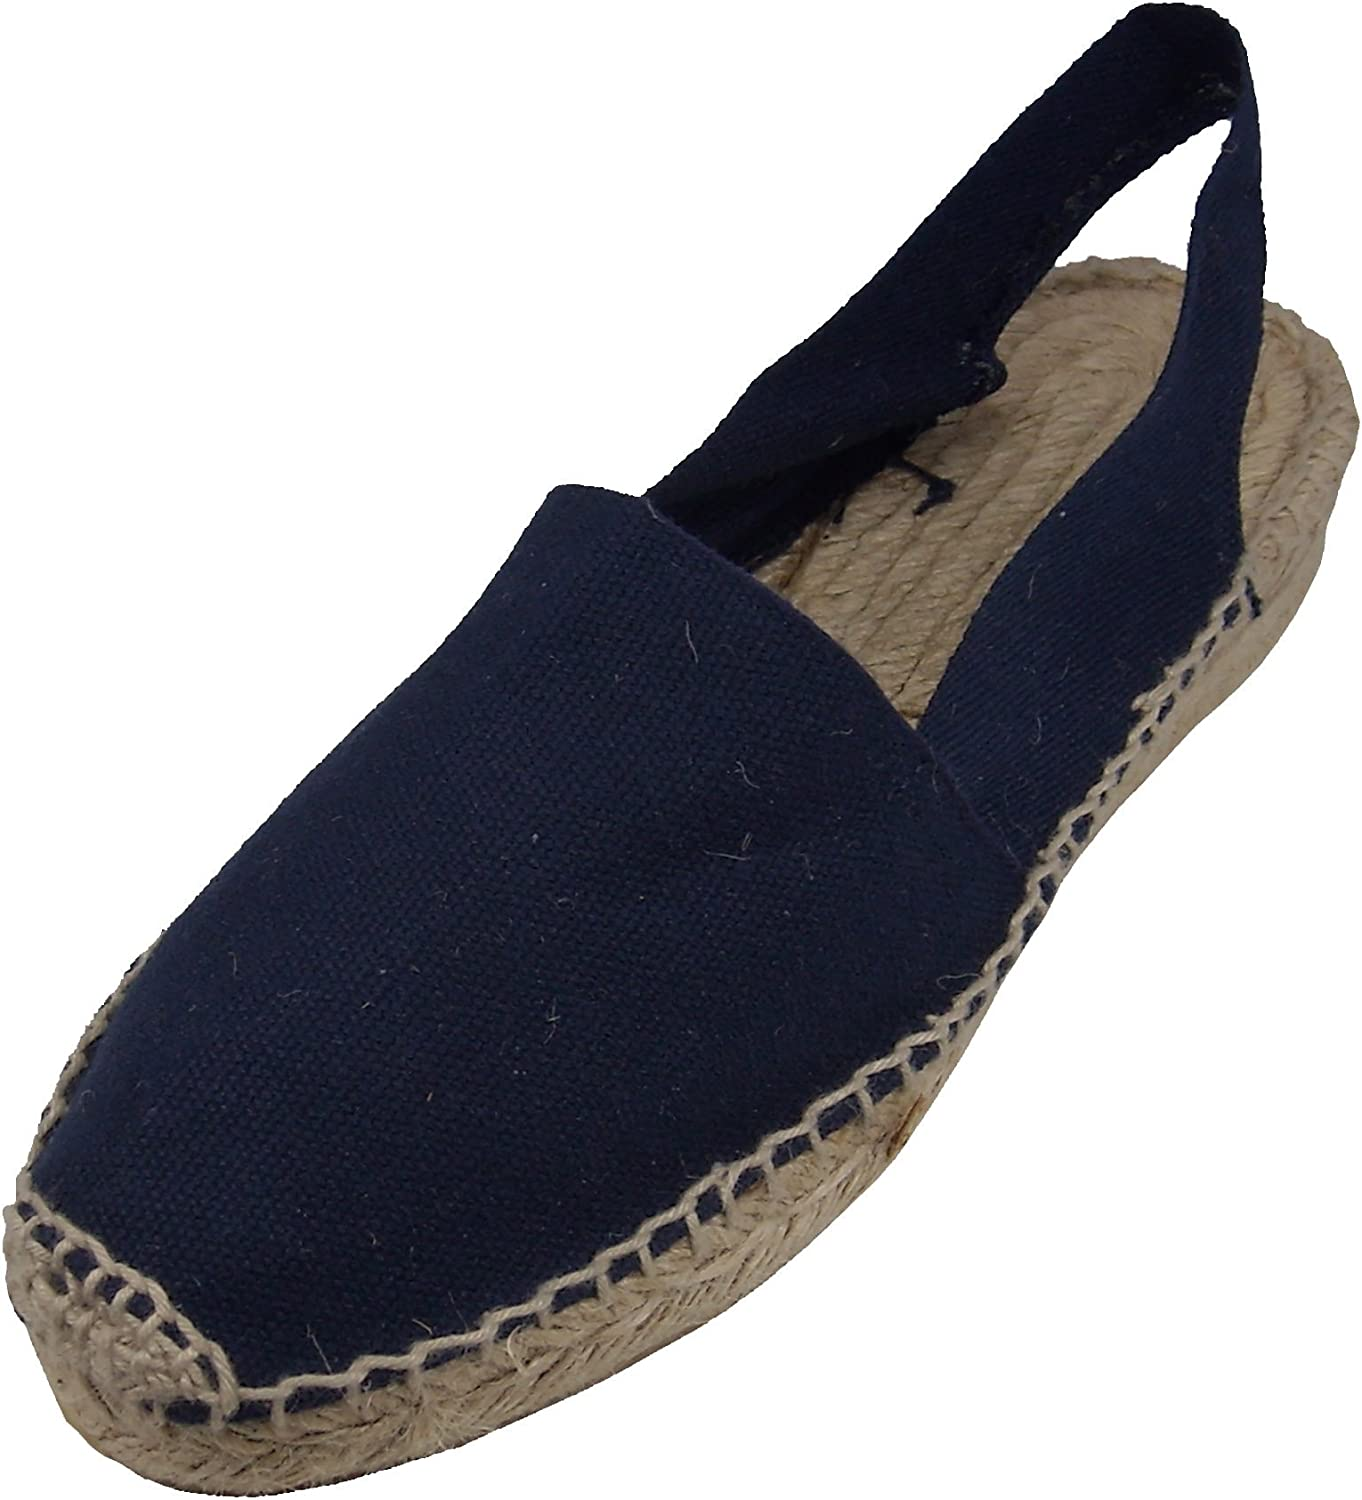 Alpargatus Low Heel Sandals Navy bluee